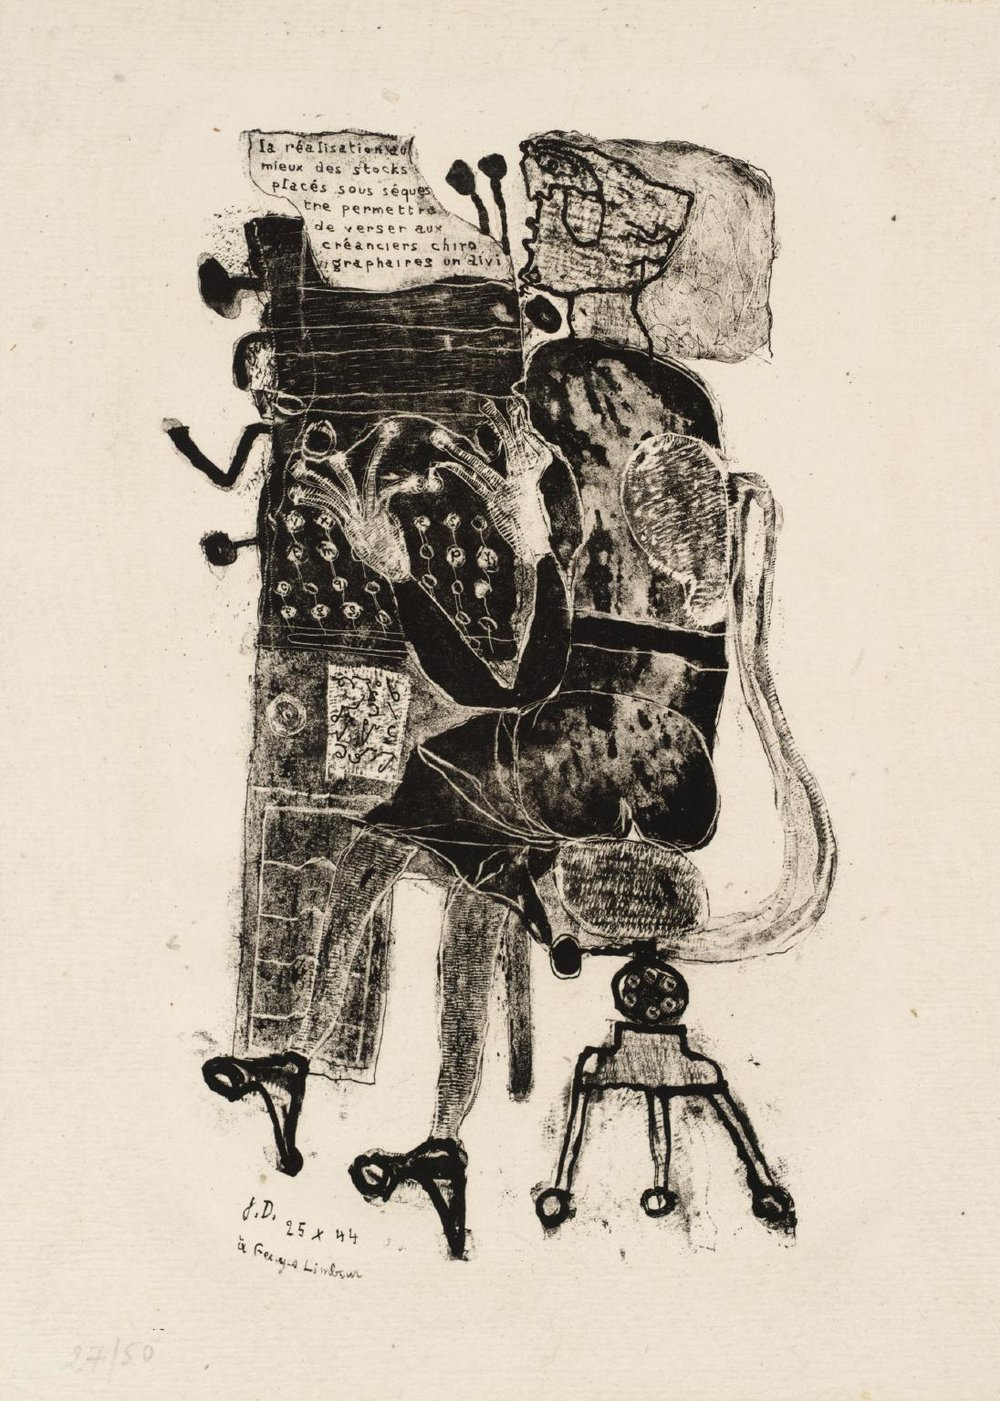 Typist from the series 'Matter and Memory' 1944, by Jean Dubuffet.